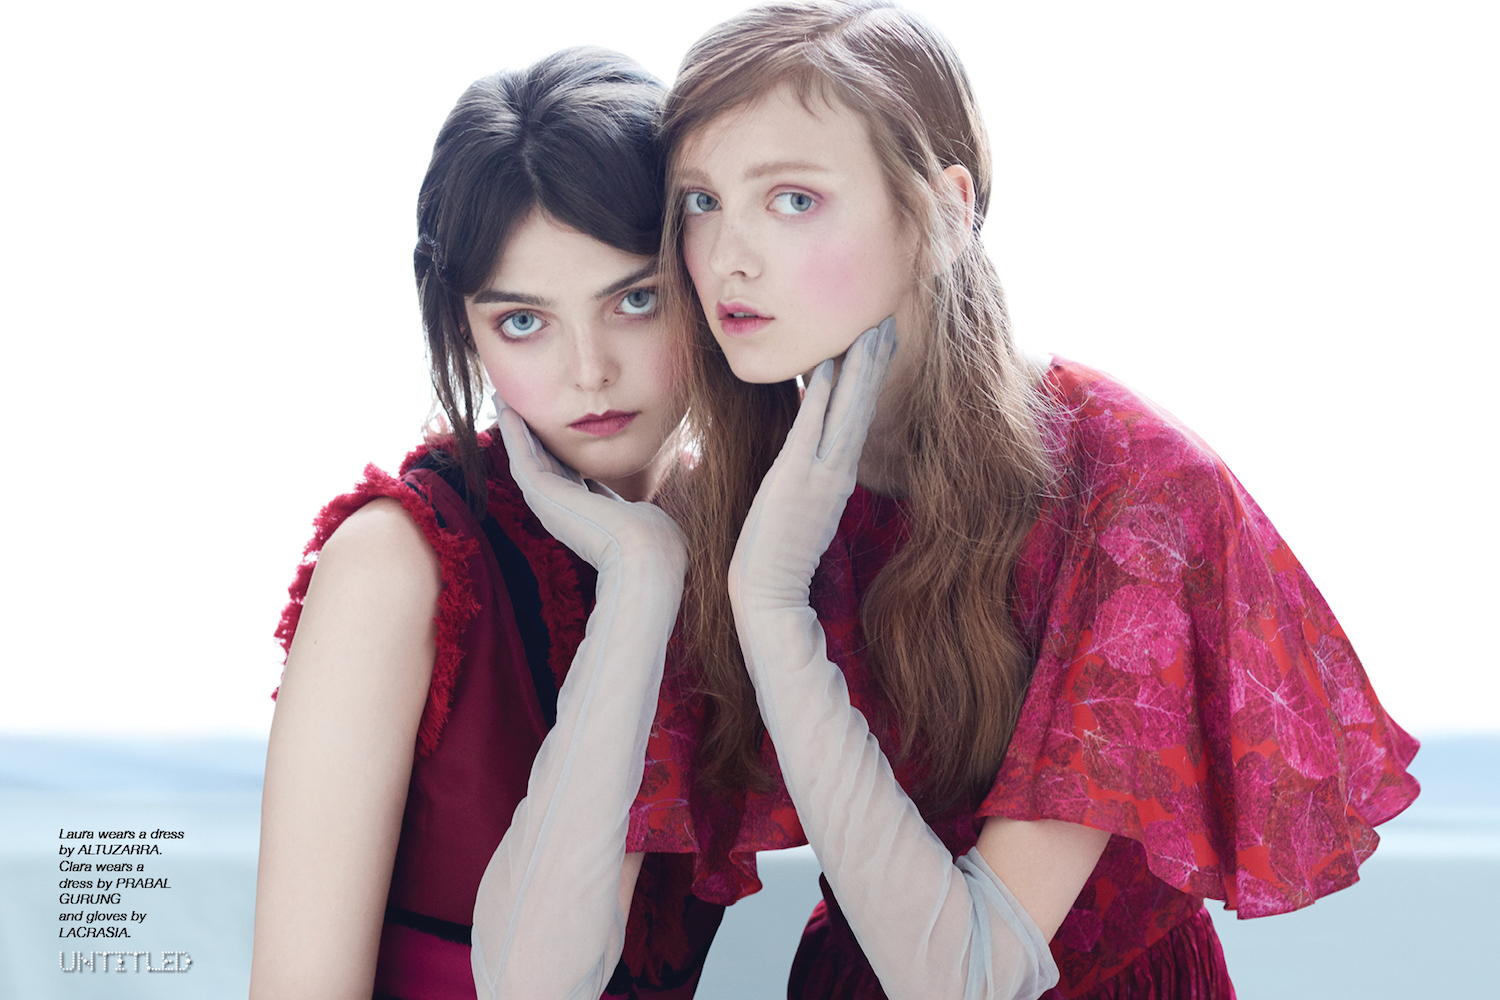 Laura-and-Clara-The-Untitled-Magazine-Photography-by-Rebecca-Miller-7 copy.jpg